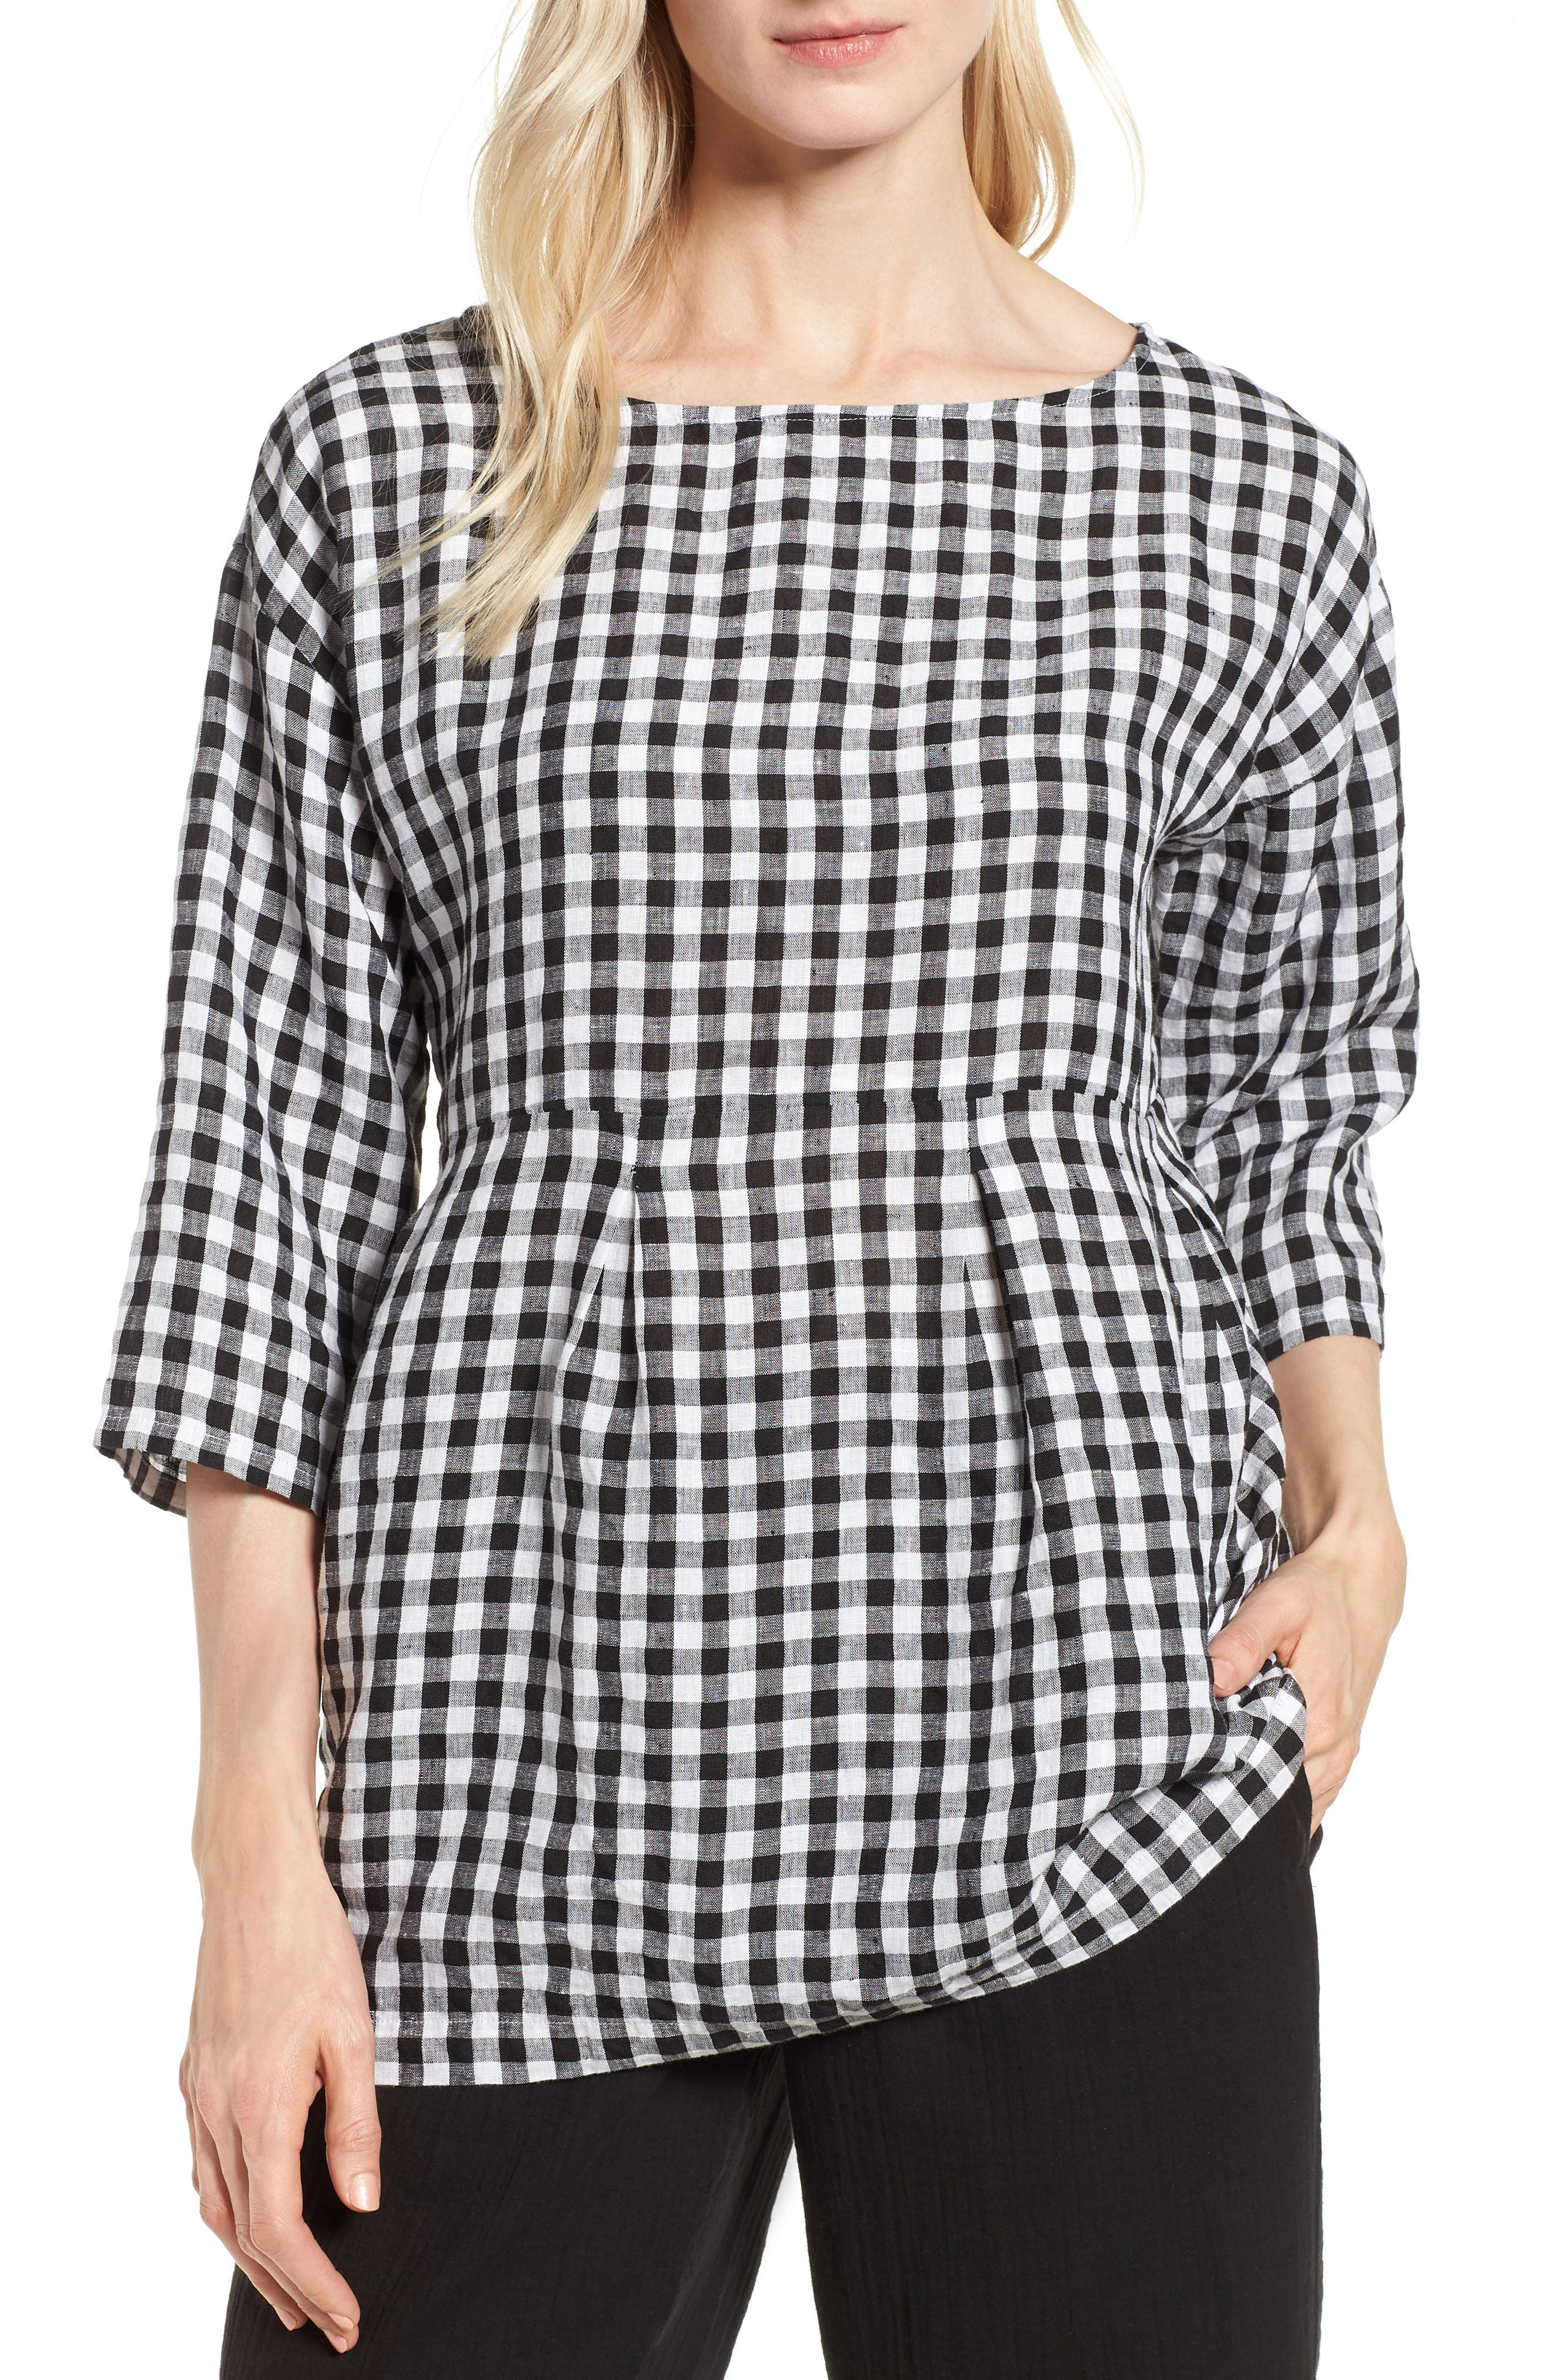 Gingham Organic Linen Top,                         Main,                         color, Black/ White